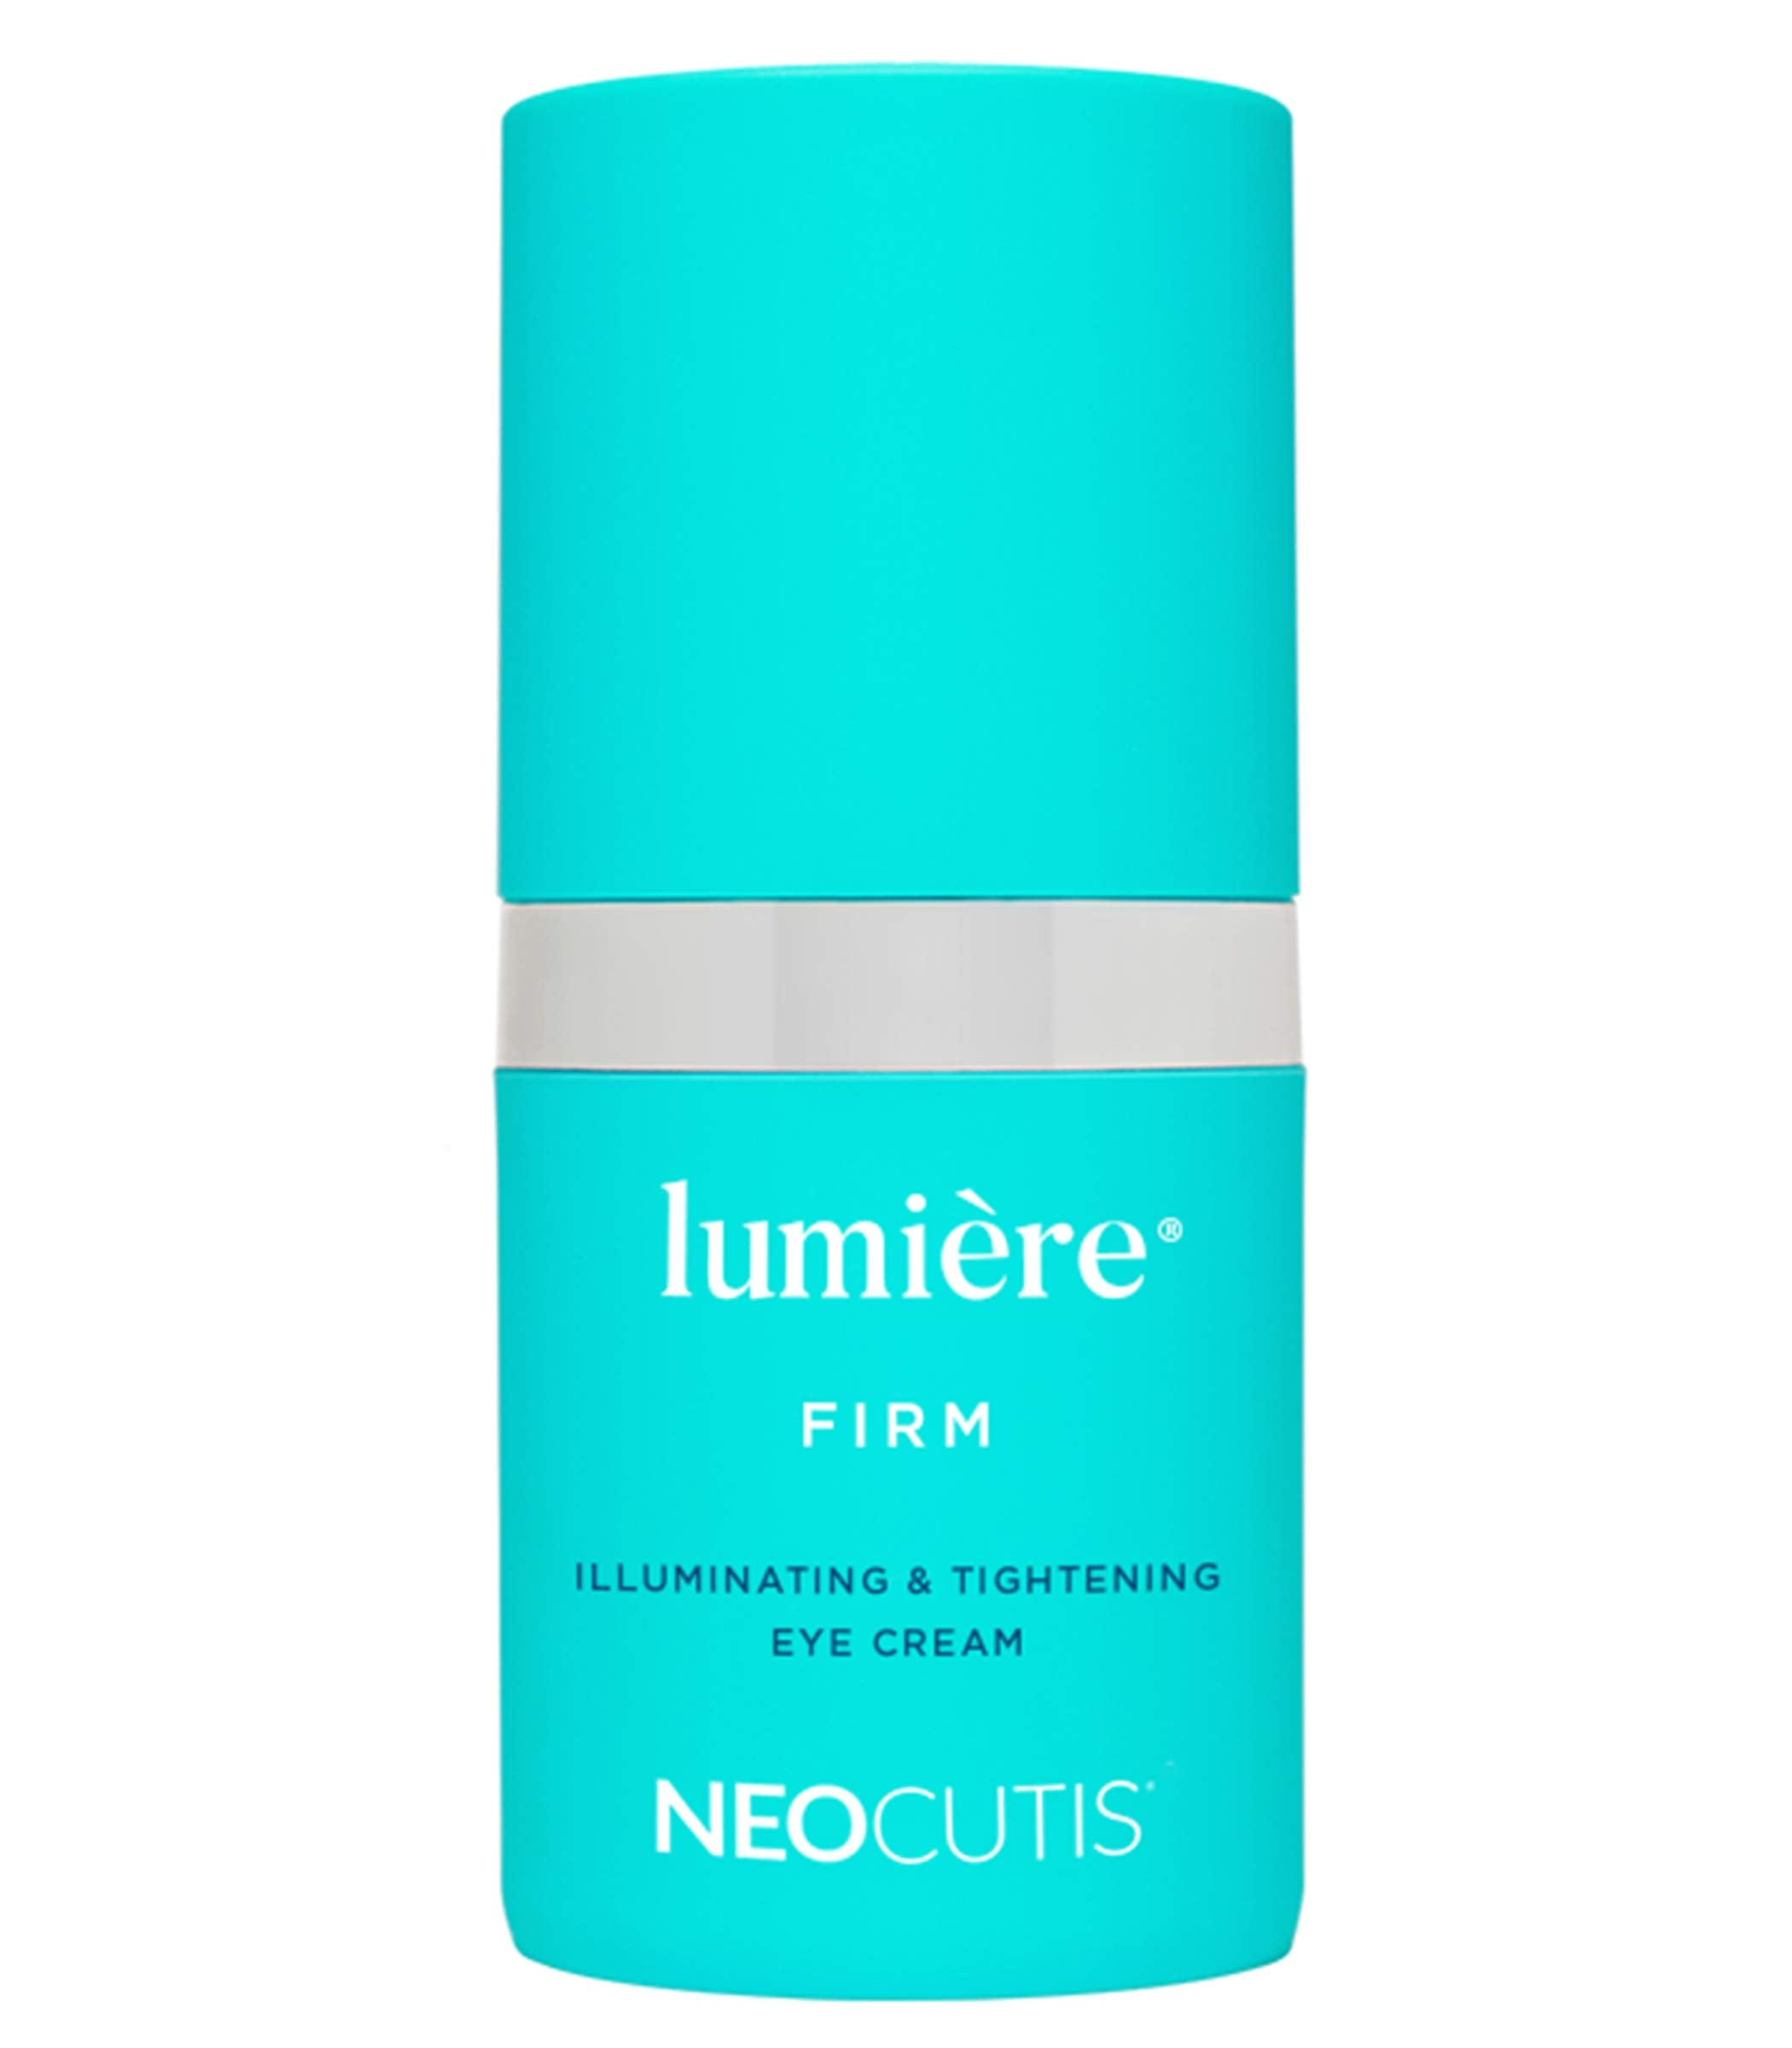 NEOCUTIS Lumiere  Firm  |  Illuminating & Tightening Eye Cream 15ml | NEW PRODUCT